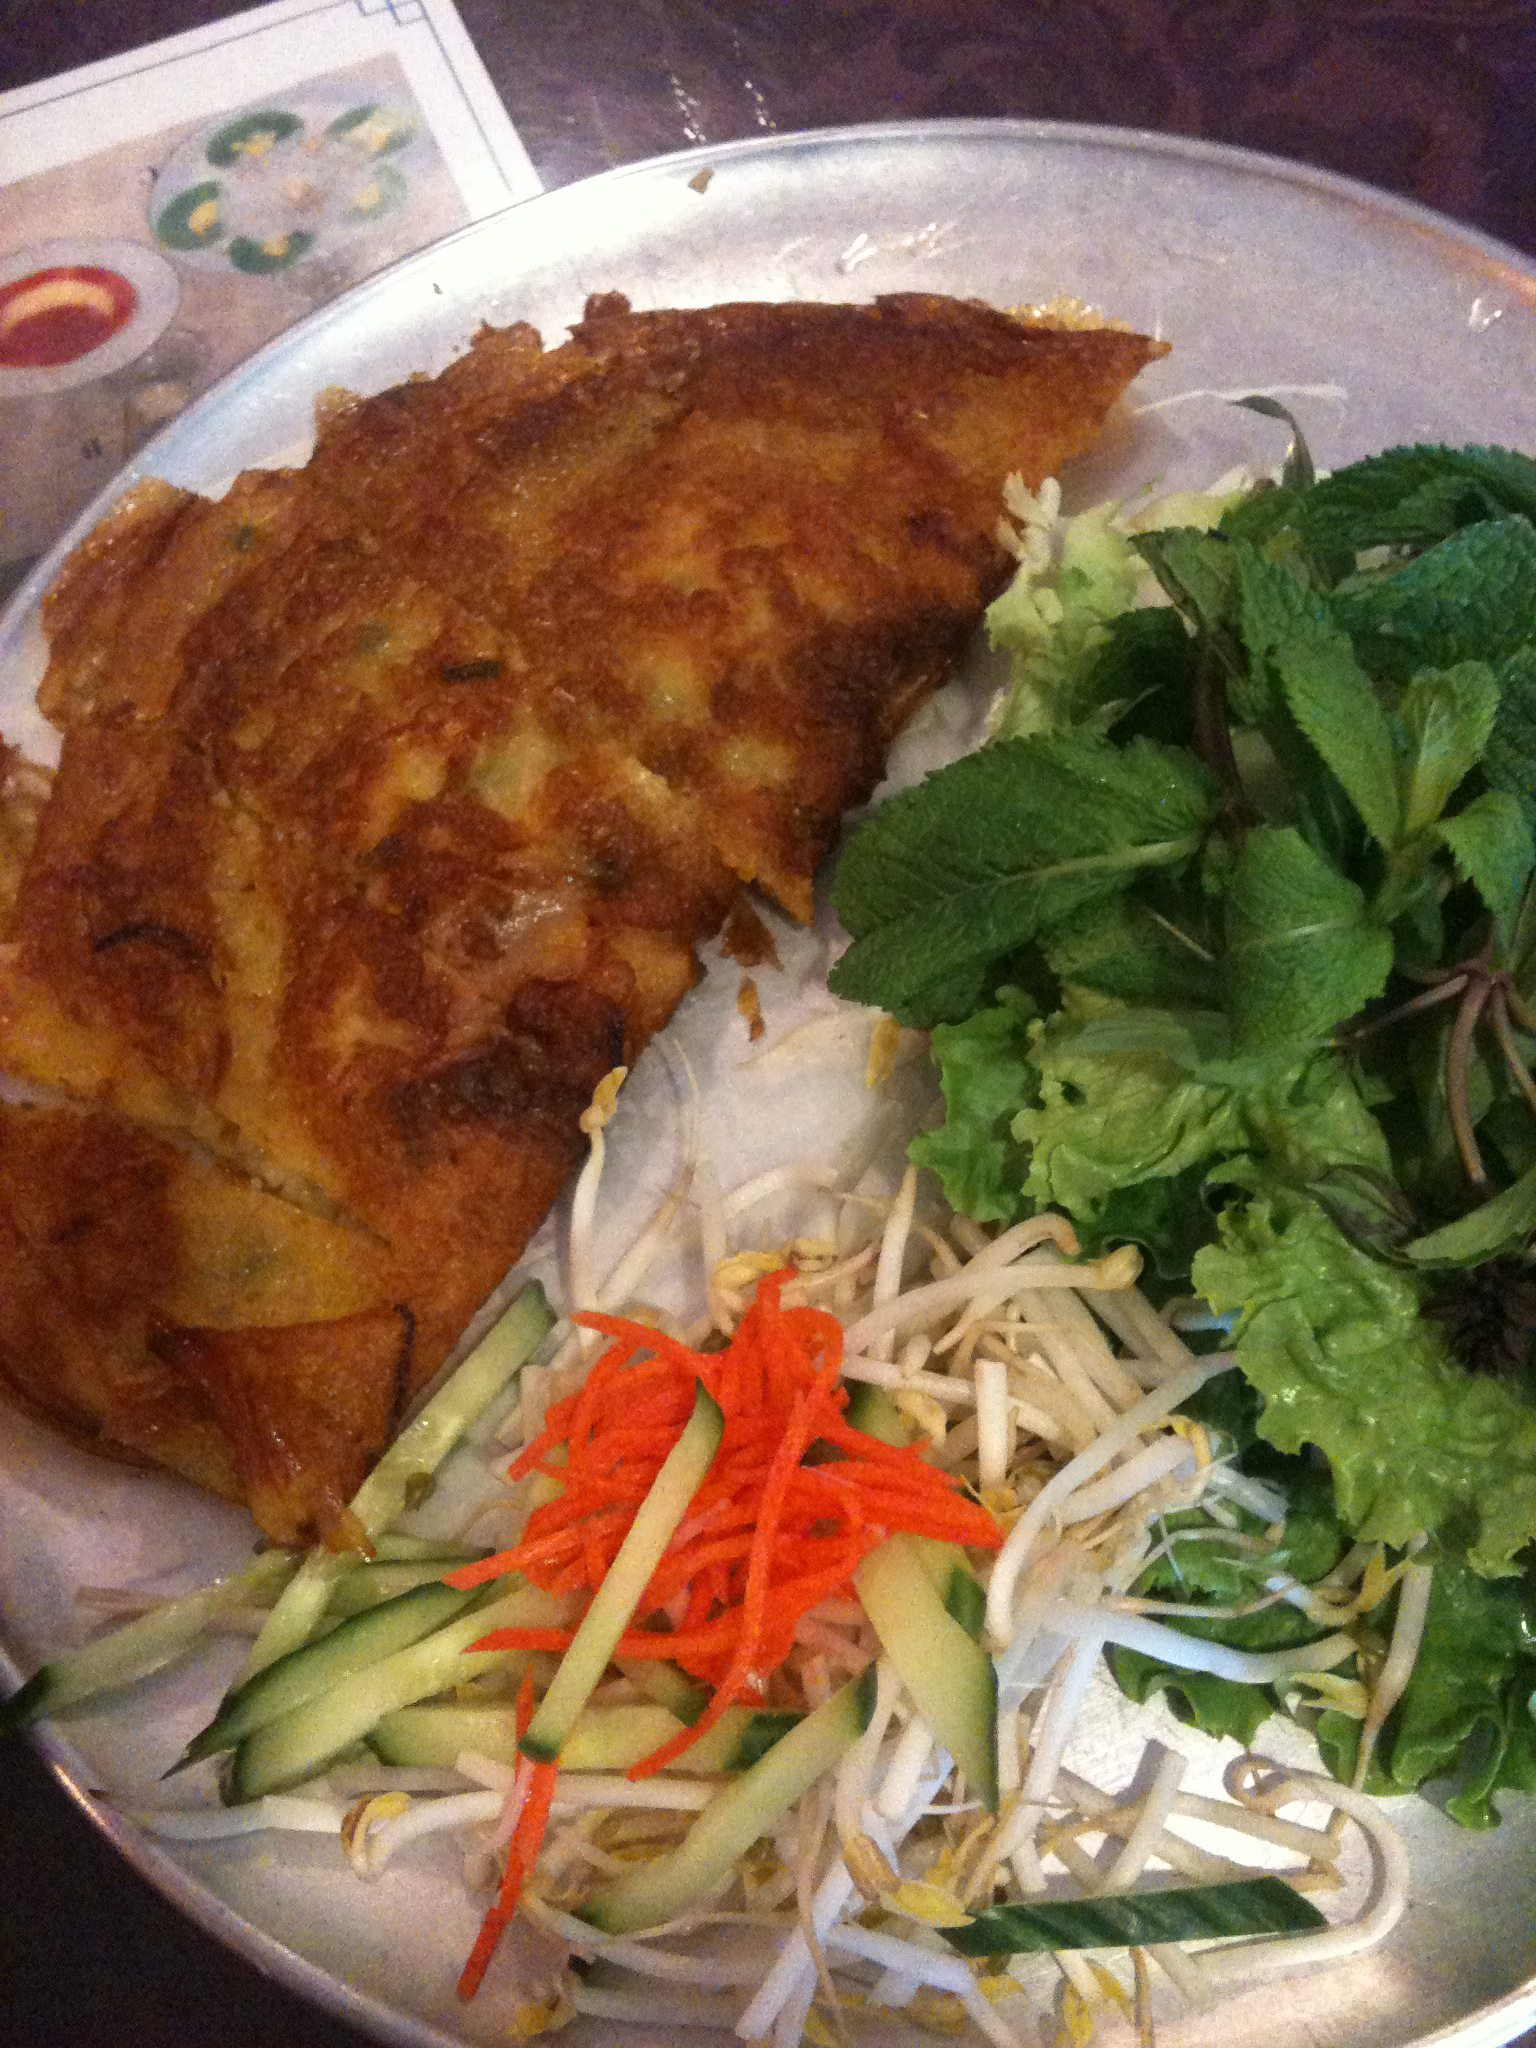 WEEKLY LUNCH PICK: Huong's banh xeo, the addictive golden savoury Vietnamese crêpe